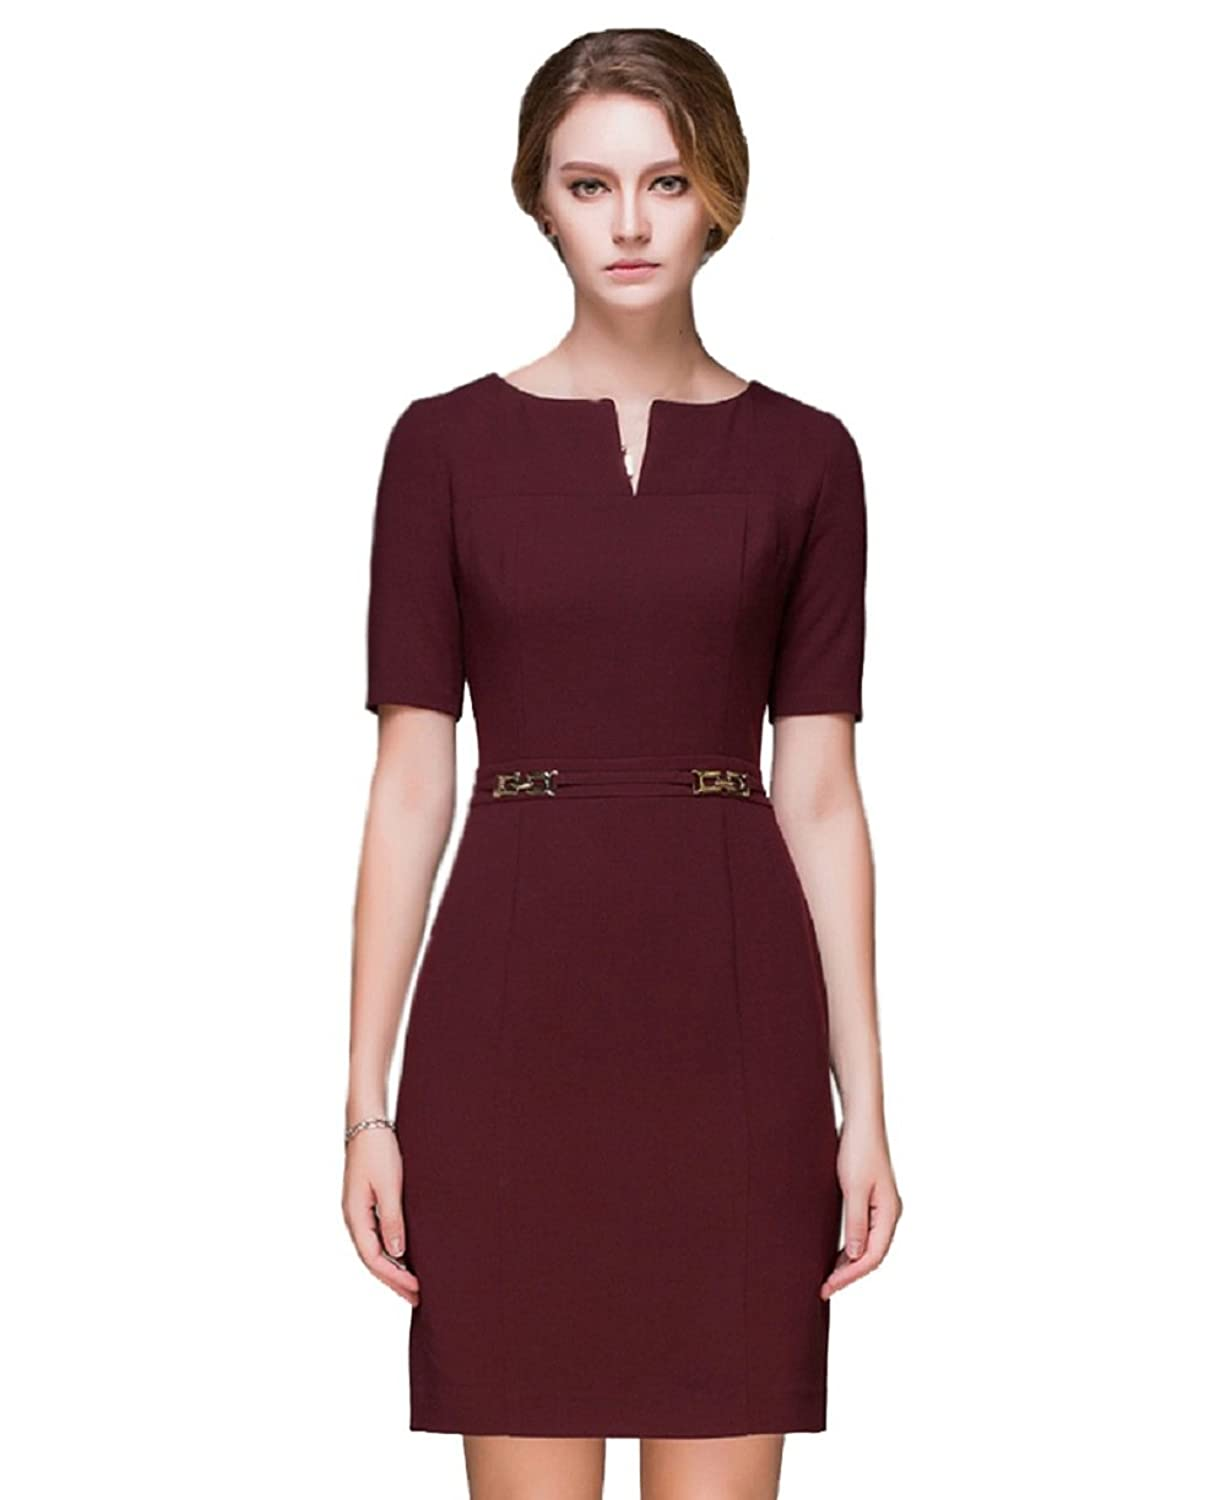 Newland Women's Round Neck Short Sleeve Thick Casual Dress US 8 Wine Red